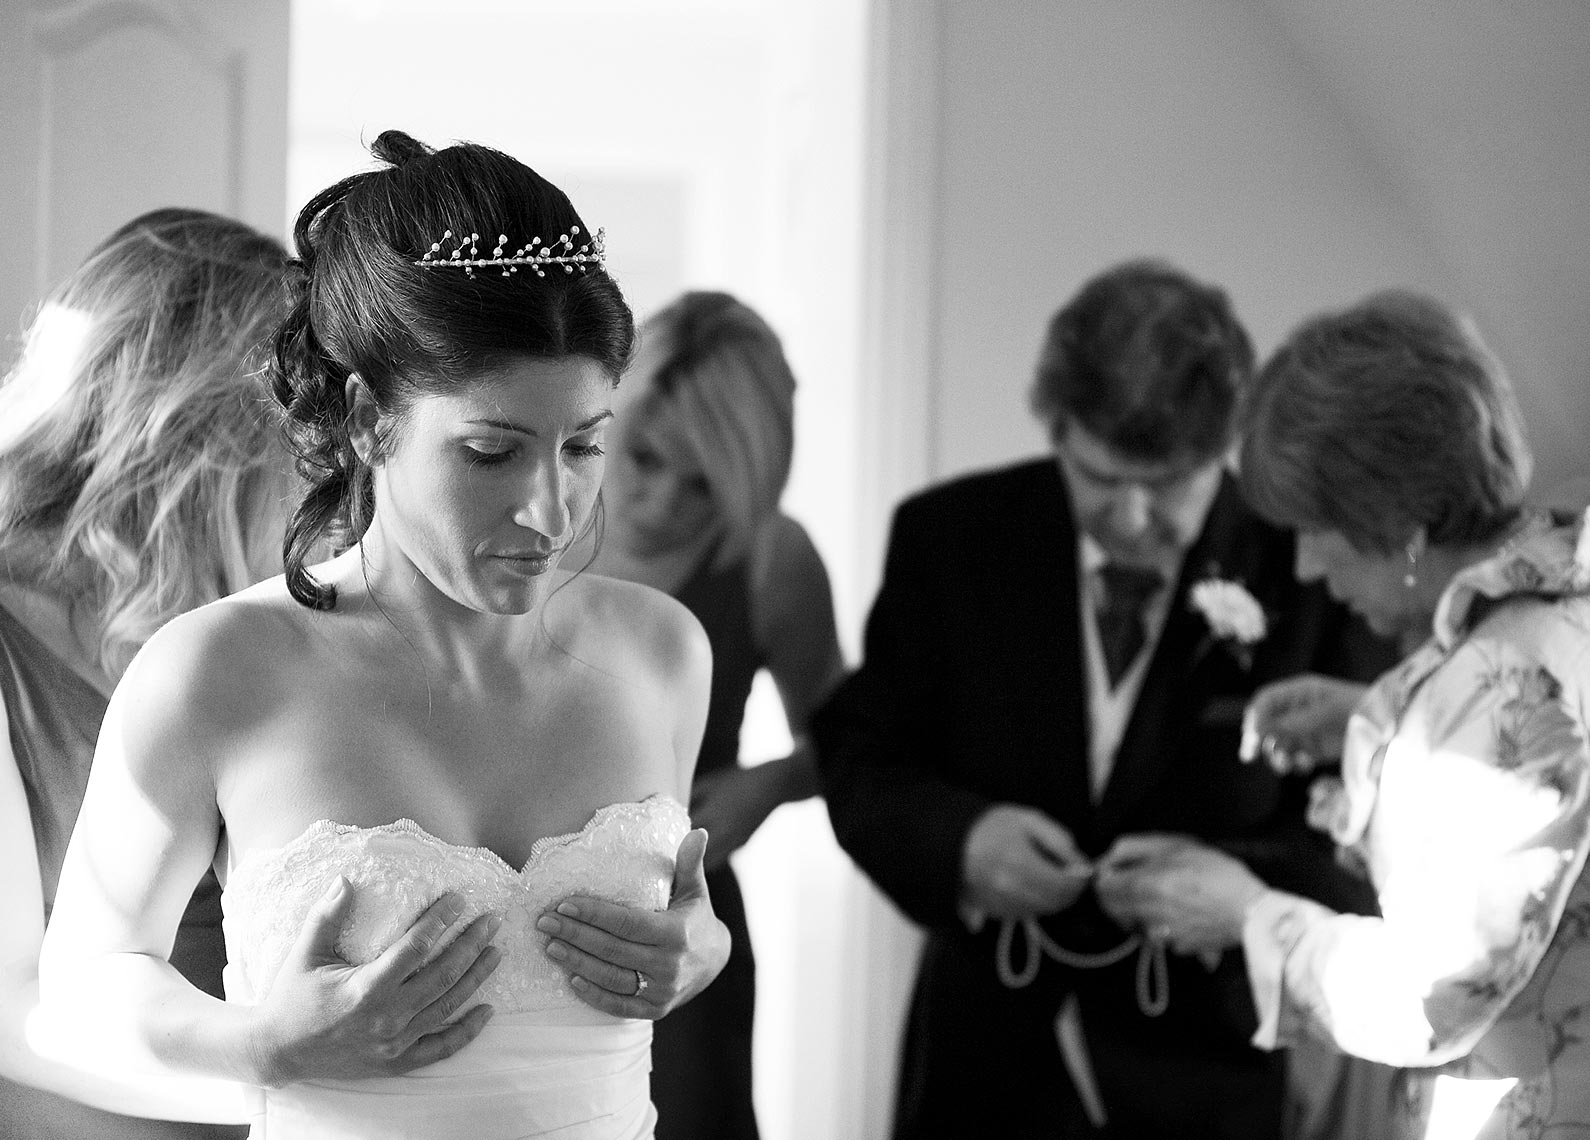 bridal-preparations-photograh.jpg